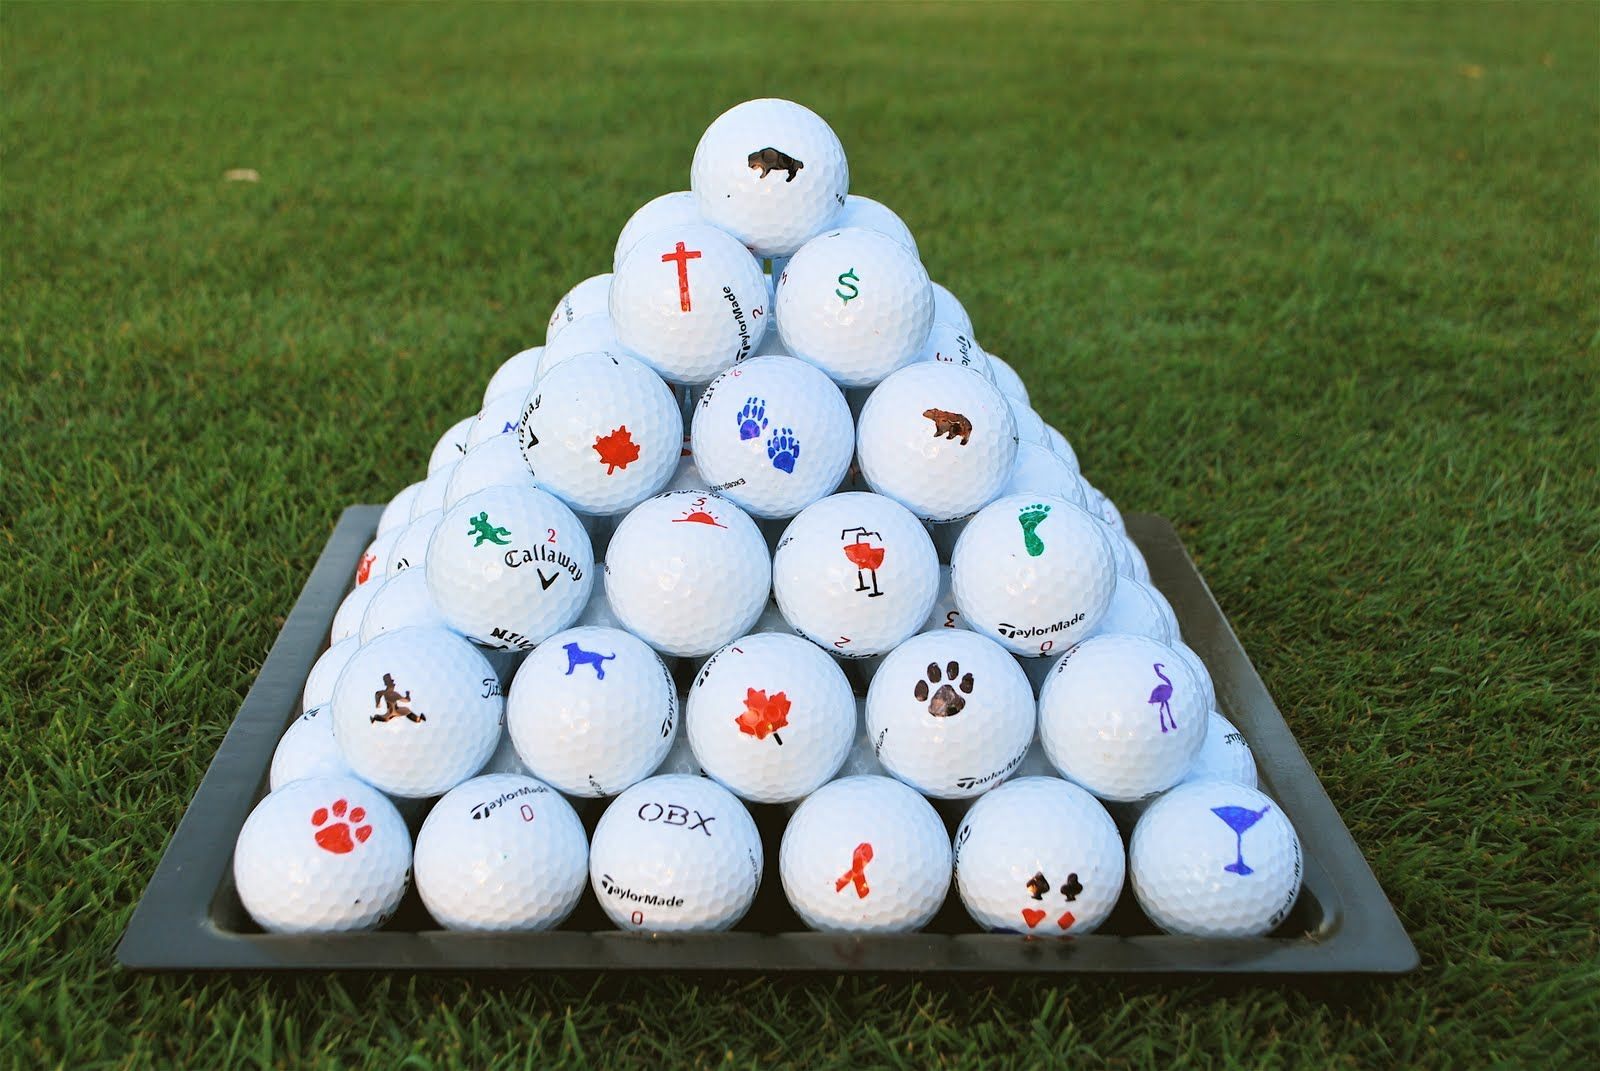 6c01f70aec3 Discover cool ways to mark your golf ball!  1. Grab a golf ball and a  sharpie marker. (color of your preference) 2. It is a very easy and common  design to ...